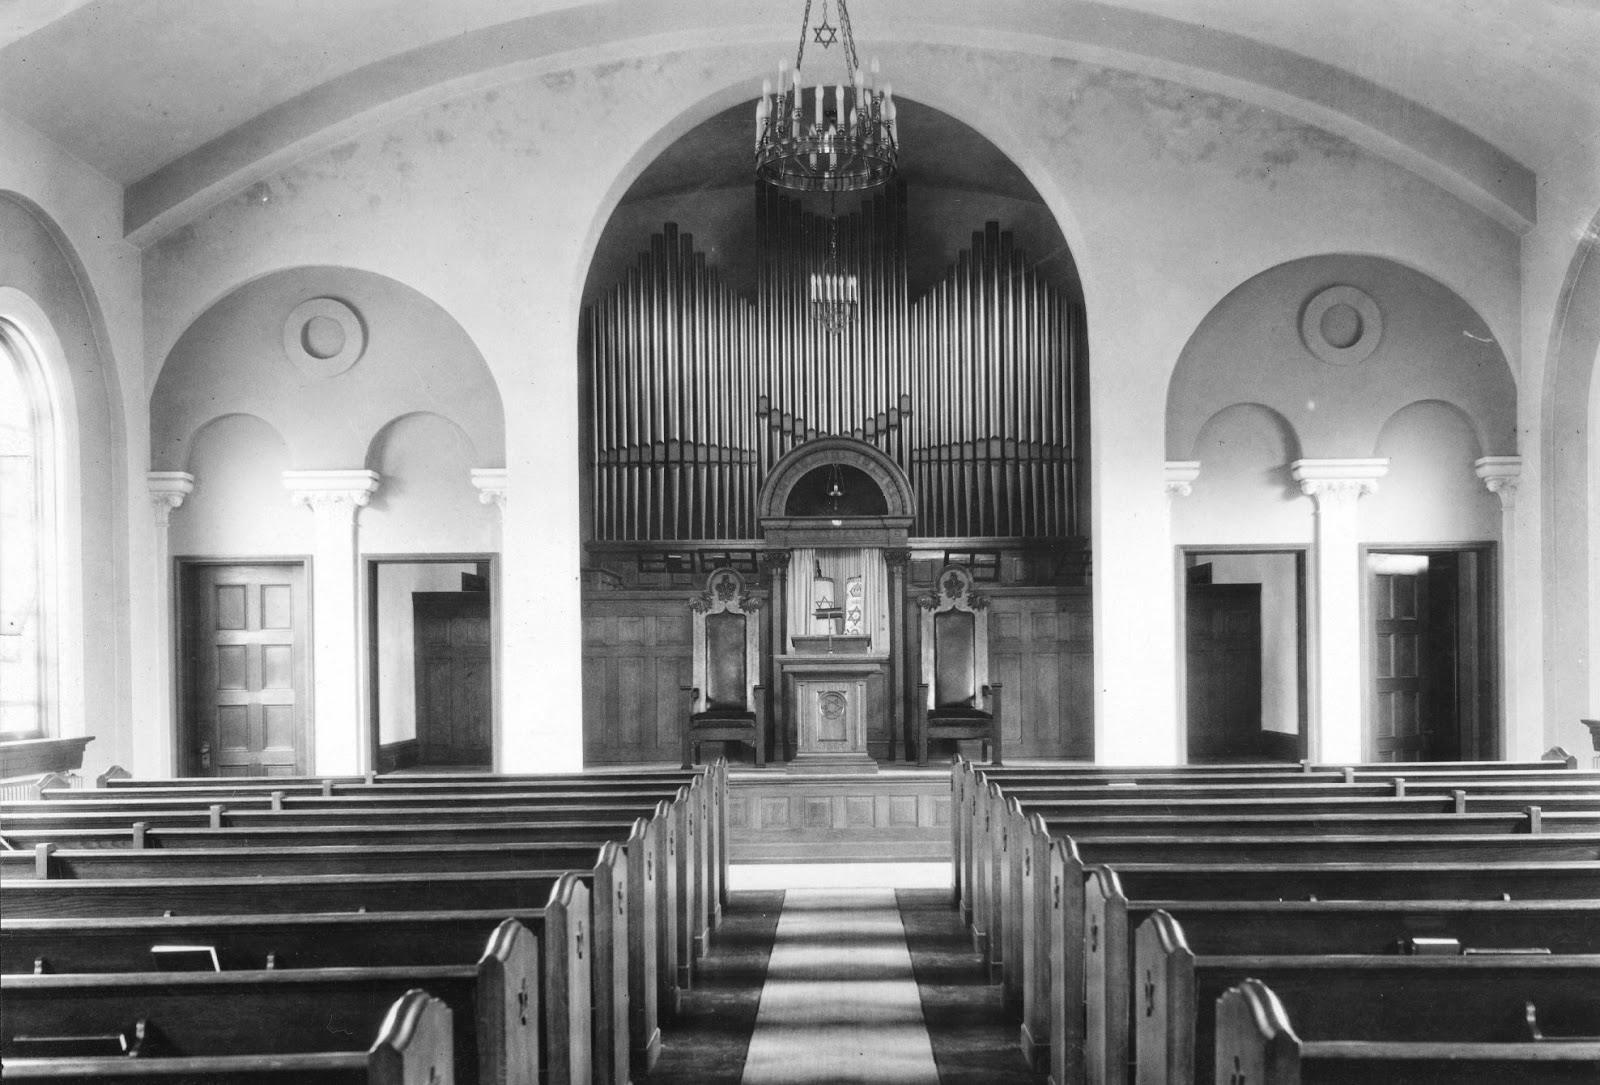 Interior of the Temple (image from the University of Kentucky Library)